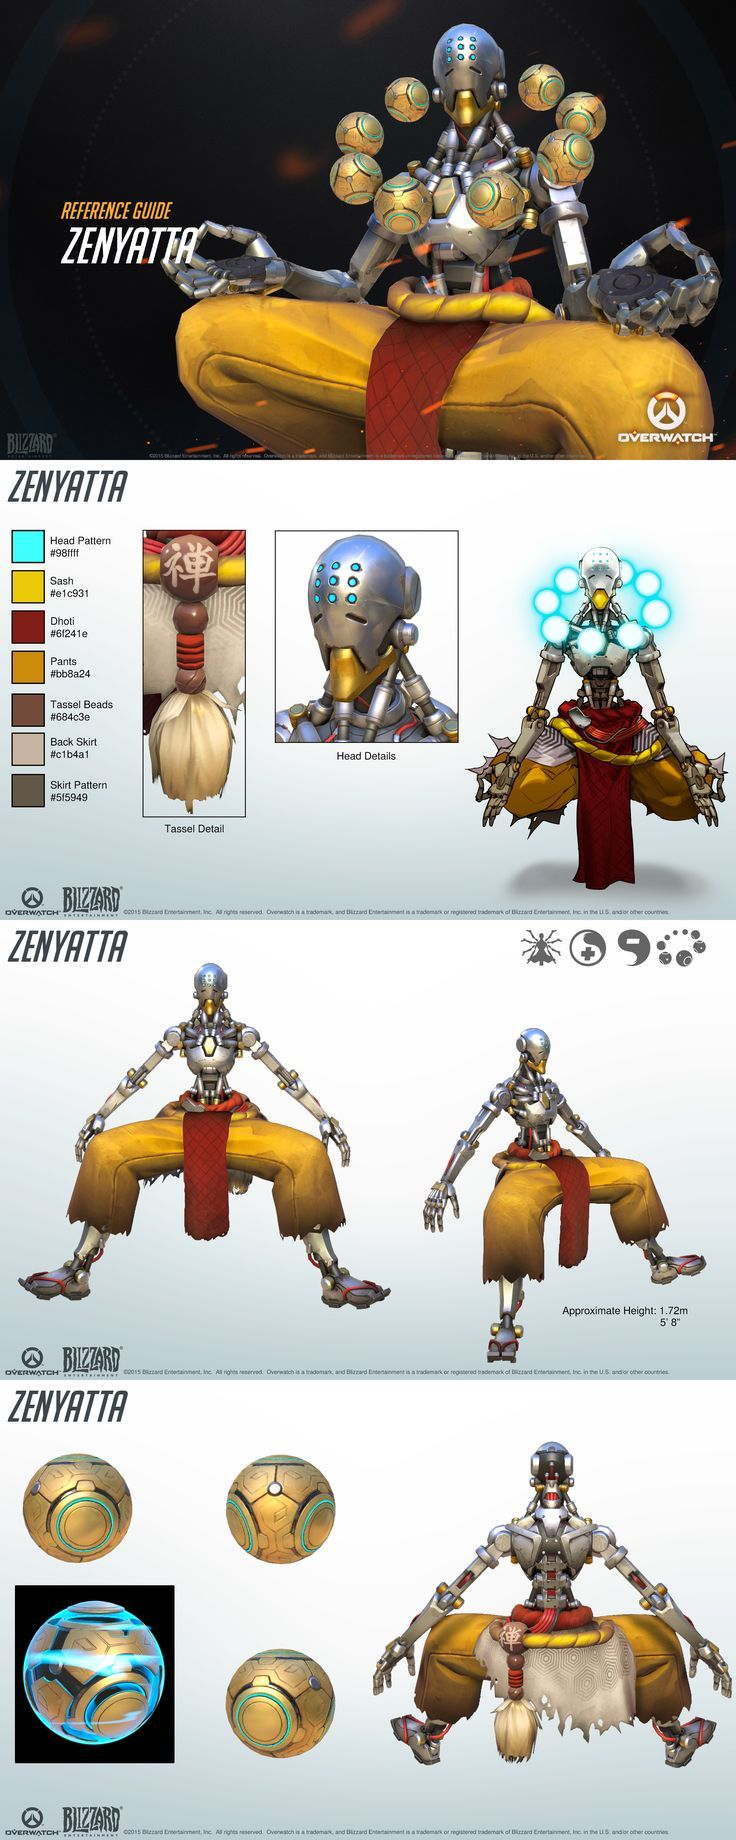 overwatch reaper - Google Search